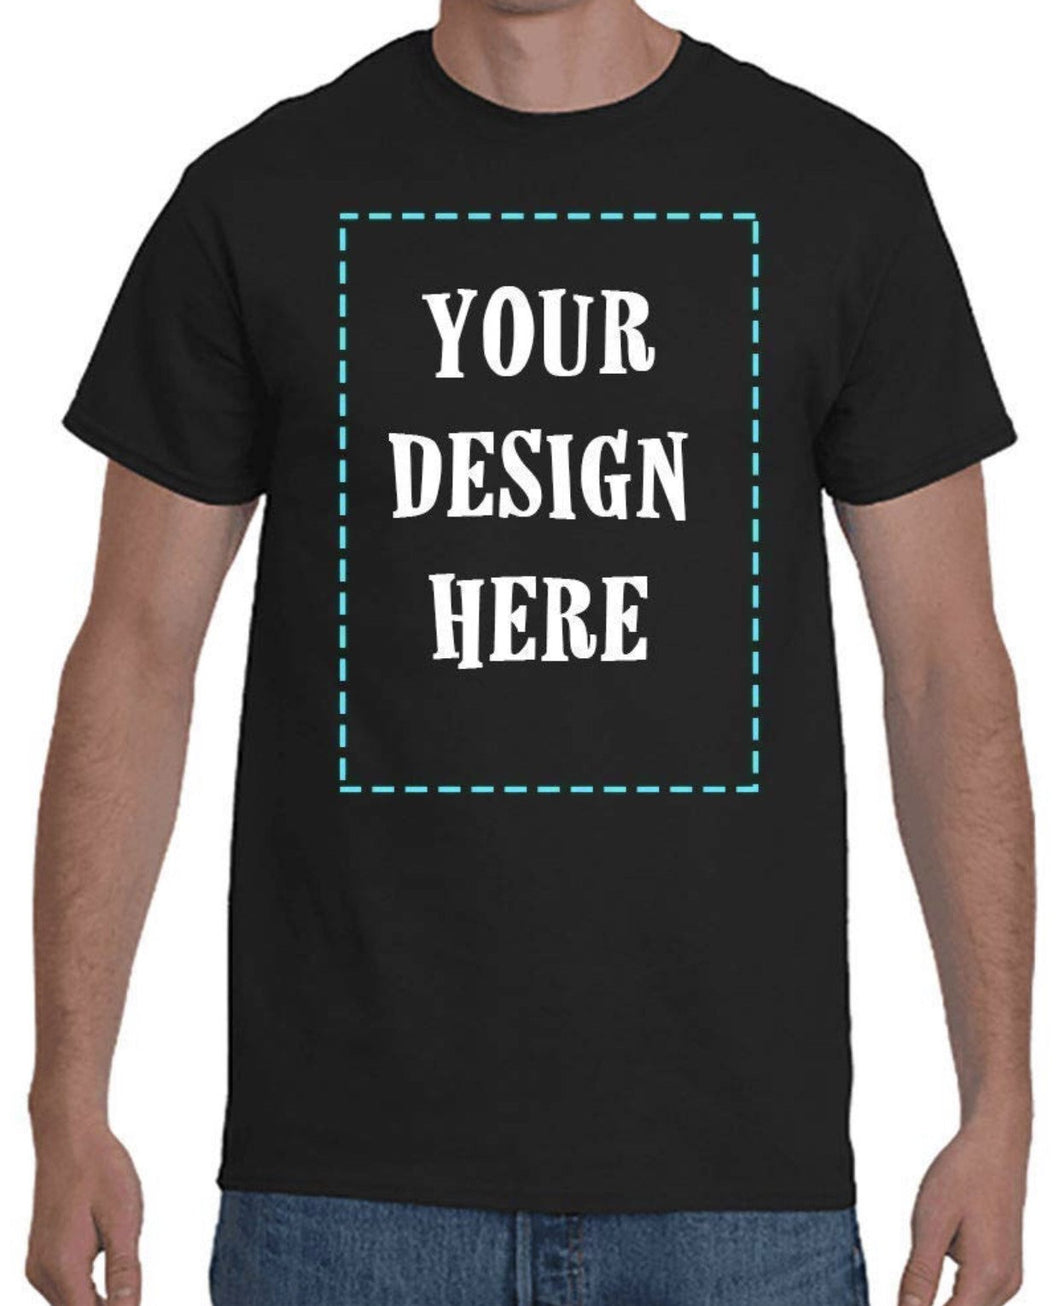 Custom T-shirts – Make Your Own Tee Shirt Design here - Customized